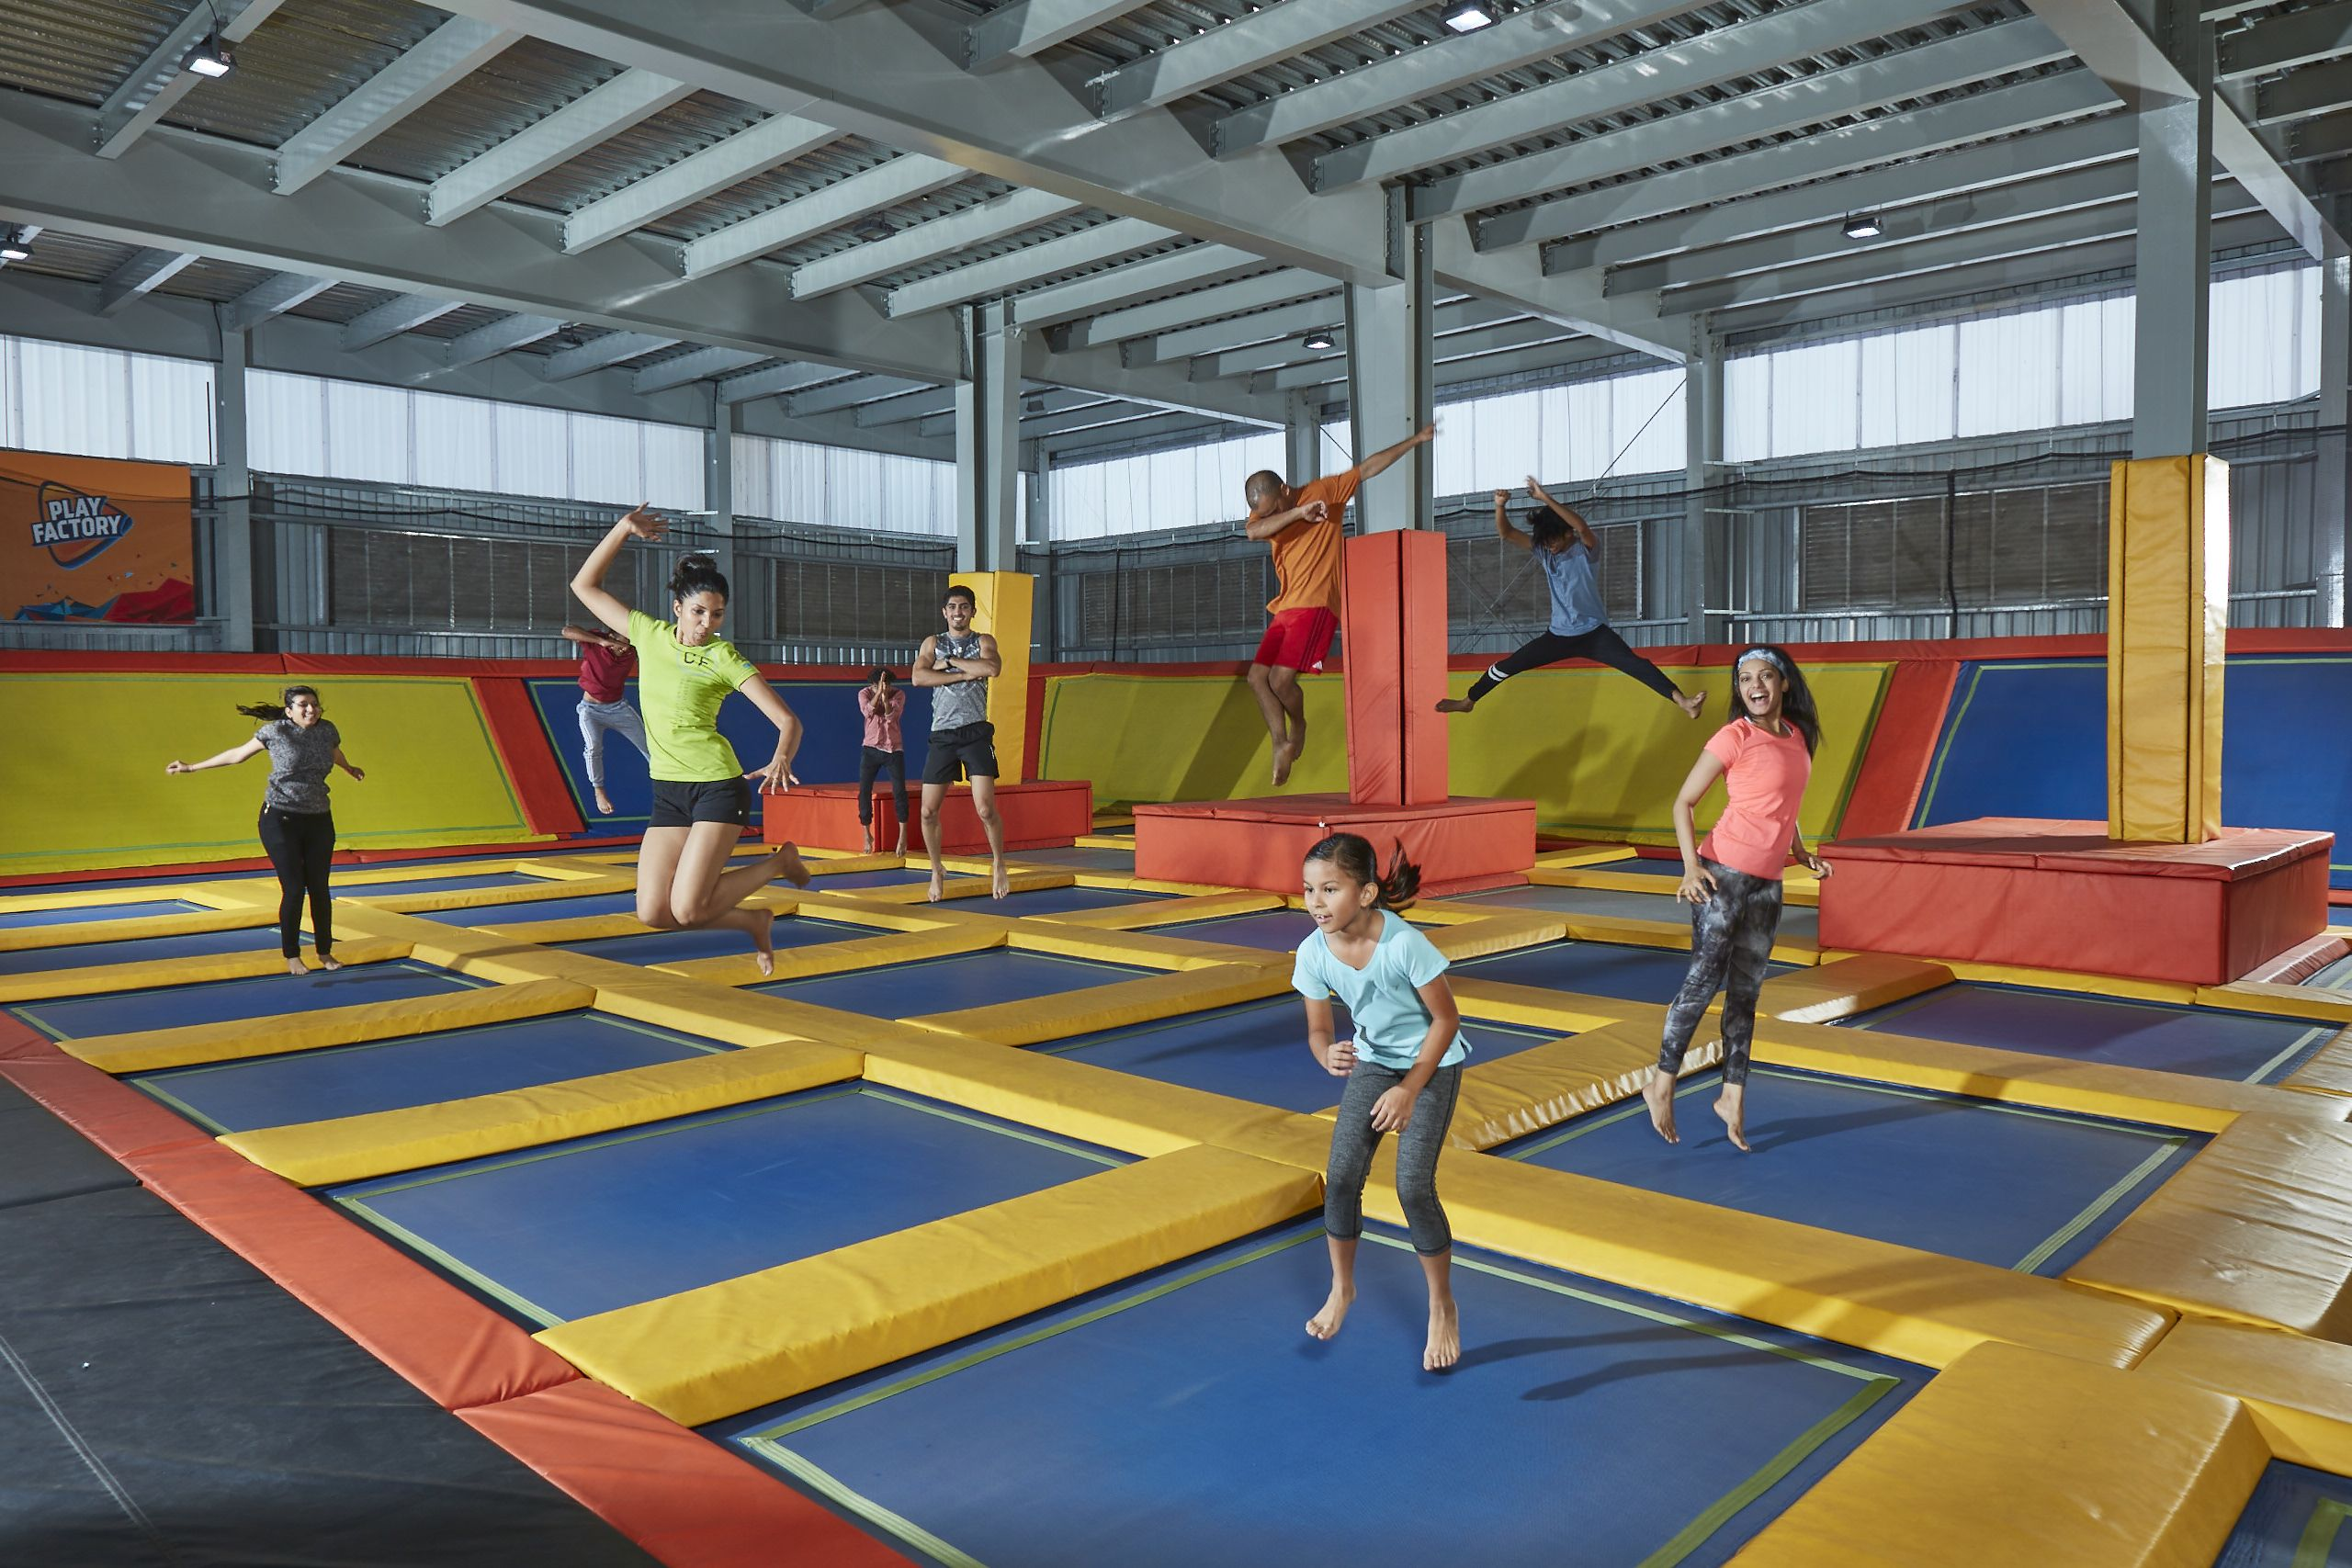 25++ What are some fun games to play on a trampoline info